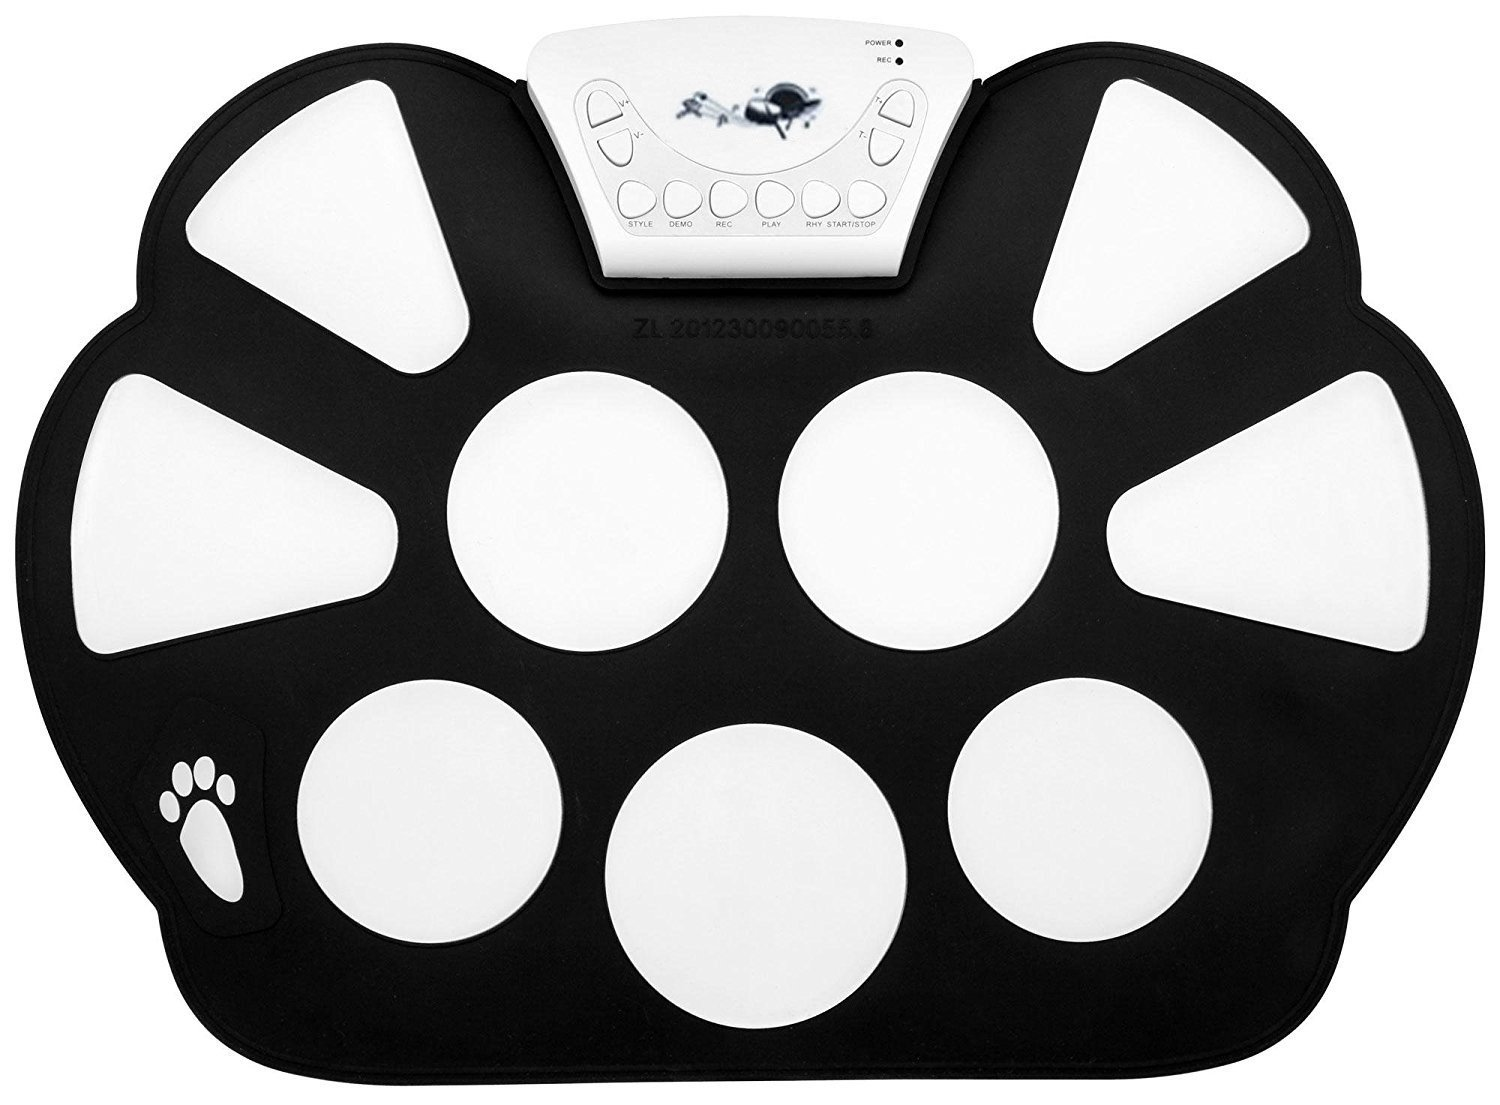 Top-Longer Portable Electronic Drum Pad Kit with Drum Sticks and Sustain Pedal for Children - Electronic Drums Pad Set Kids Gift for Christmas Day